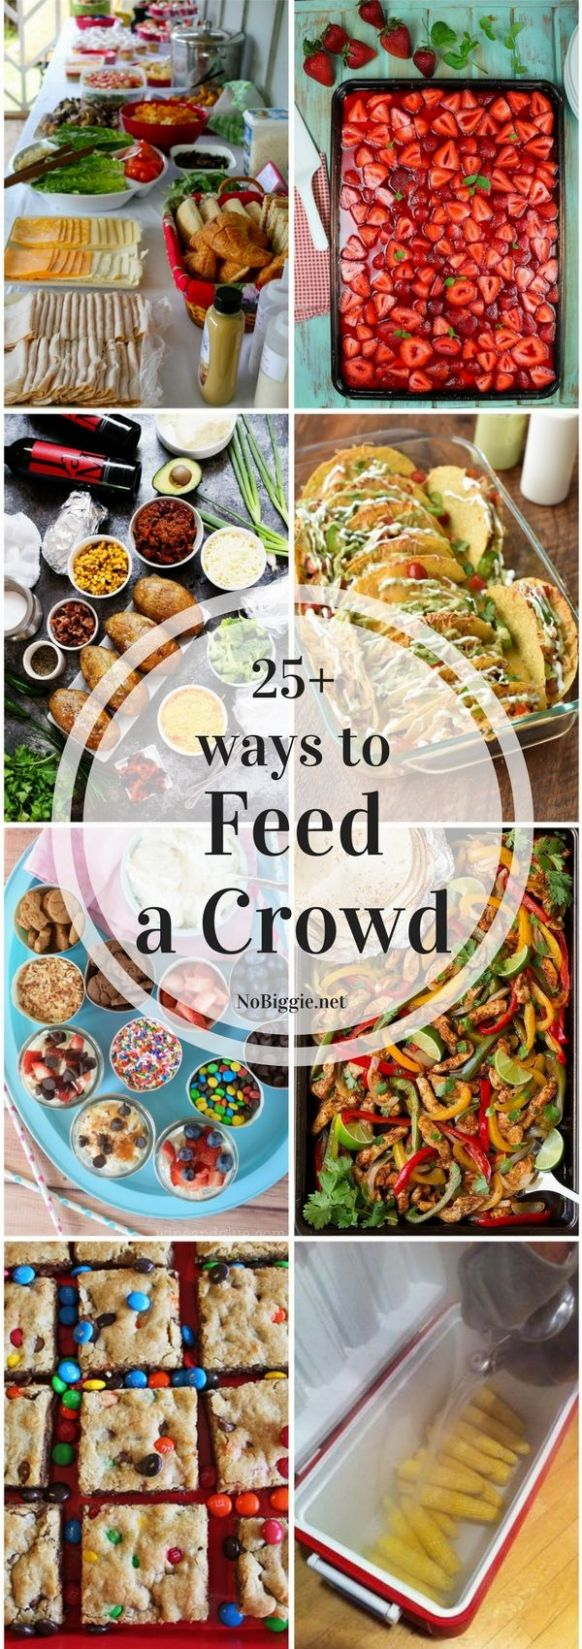 11+ Ways to Feed a Crowd | Food for a crowd, Party food on a ..